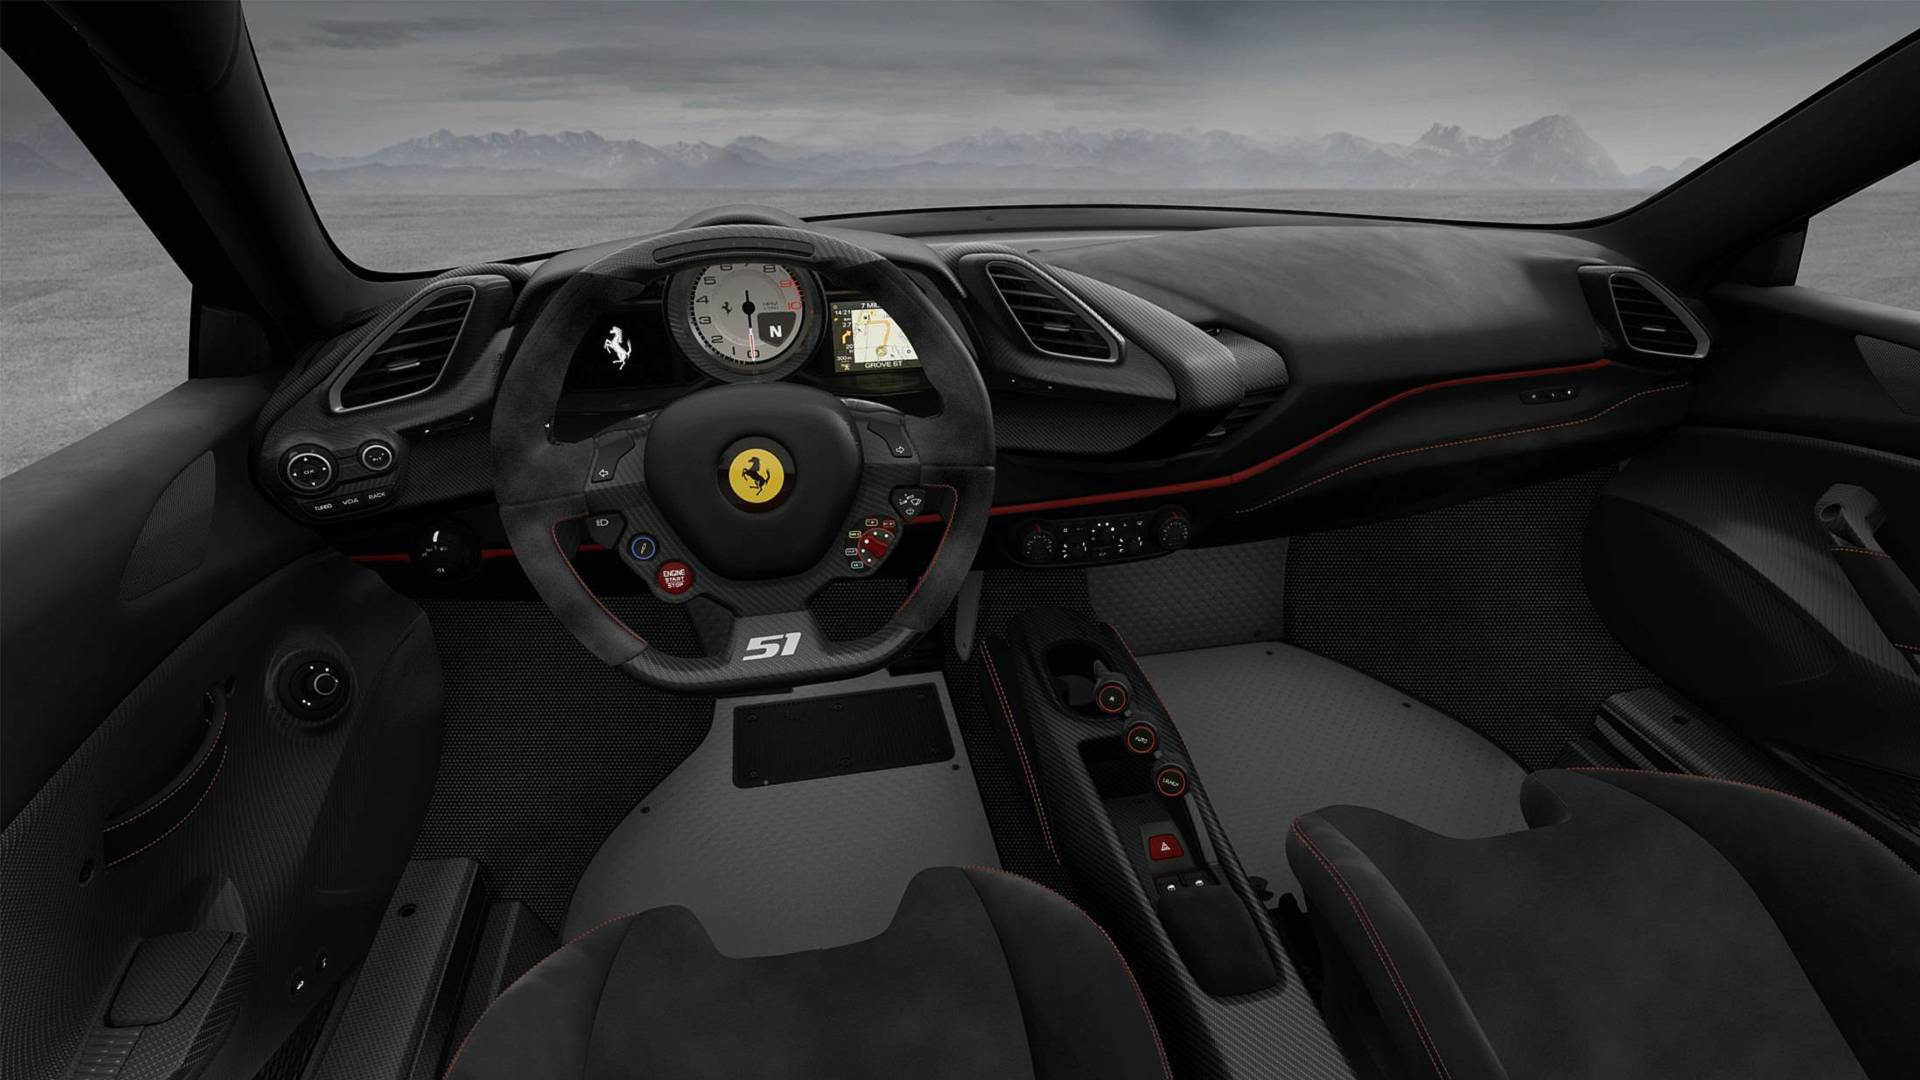 piloti-ferrari-interior-metal-floor